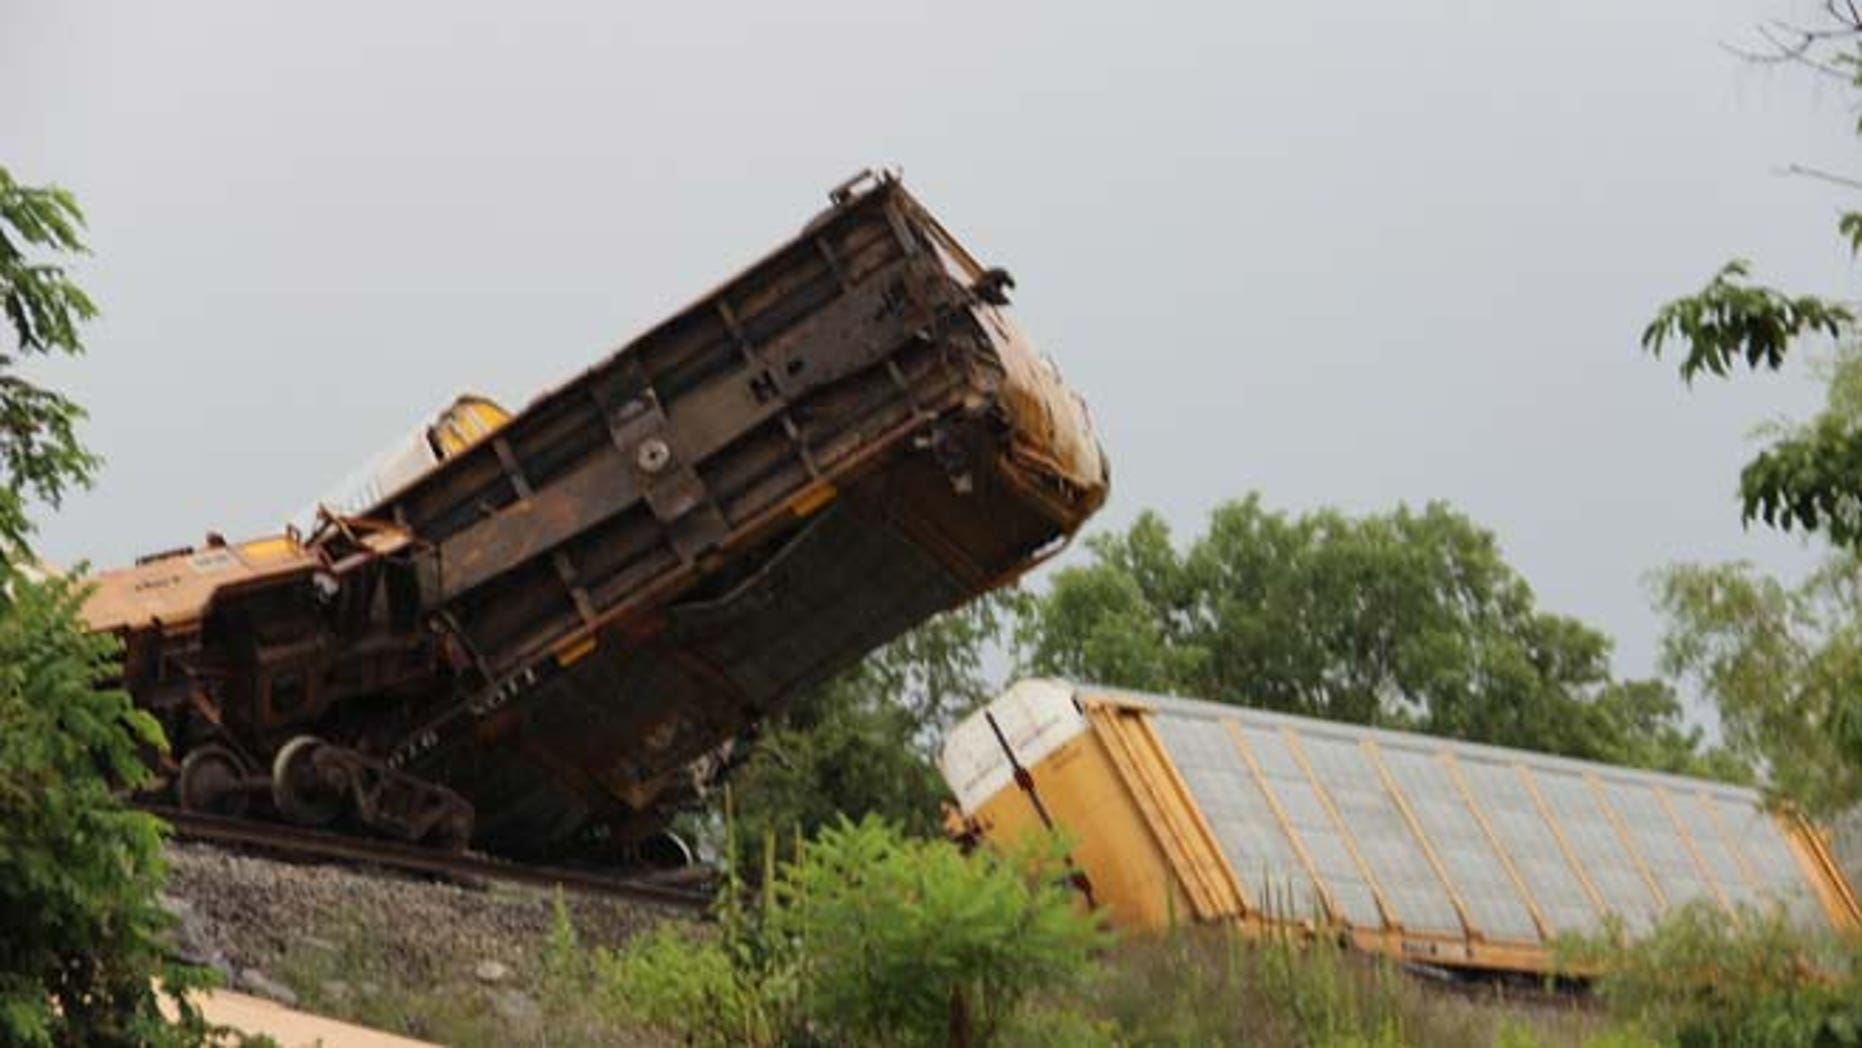 July 14, 2014: This photo provided by the Wythe County public information officer, Jeremy T.K. Farley, shows the scene after 14 railroad cars derailed in Wytheville, Va. (AP/Wythe County, Jeremy T.K. Farley)